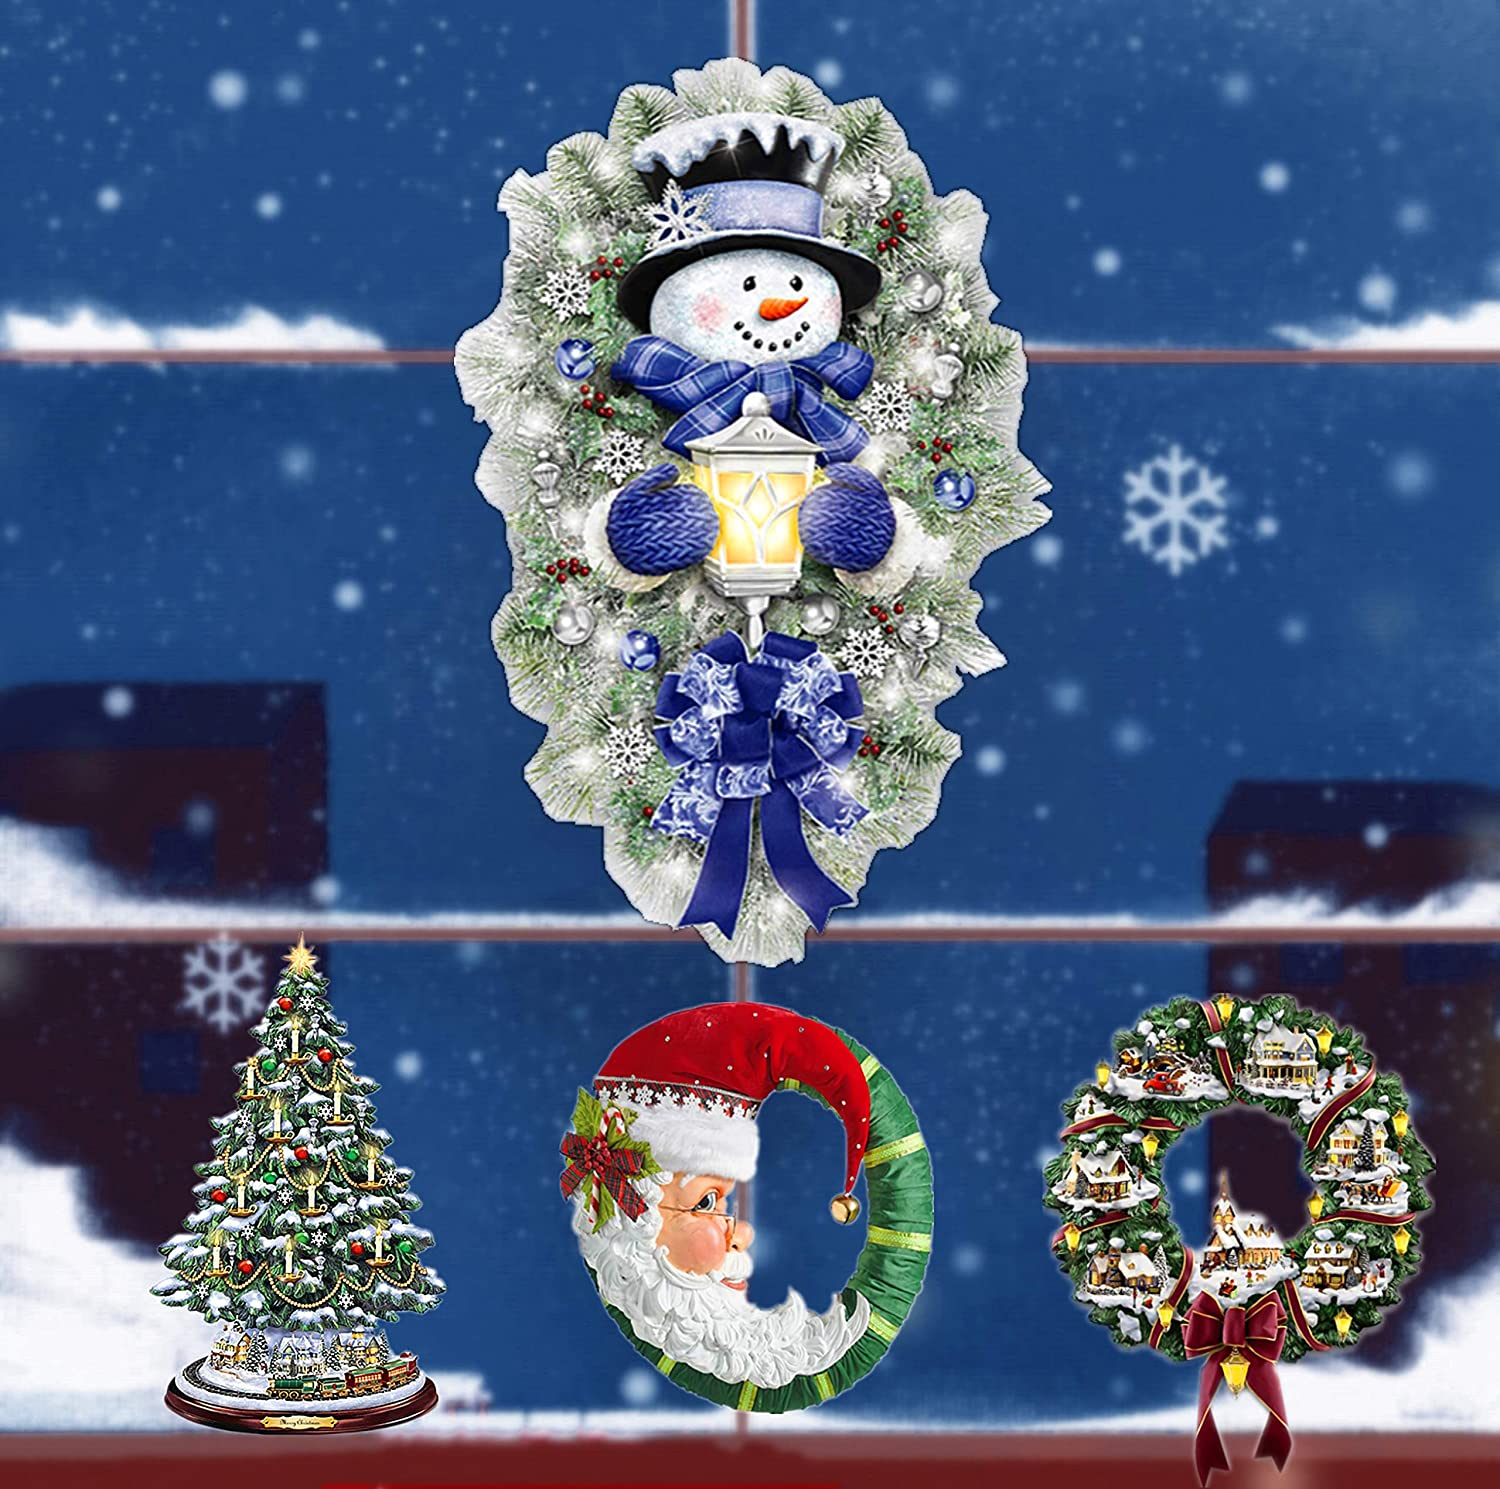 MINICOO Christmas Windows Clings,Santa Claus Snowman Christmas Tree Garland Stickers,4 pcs Window Stickers Decals for Home Office Indoor Decorations (3#)…